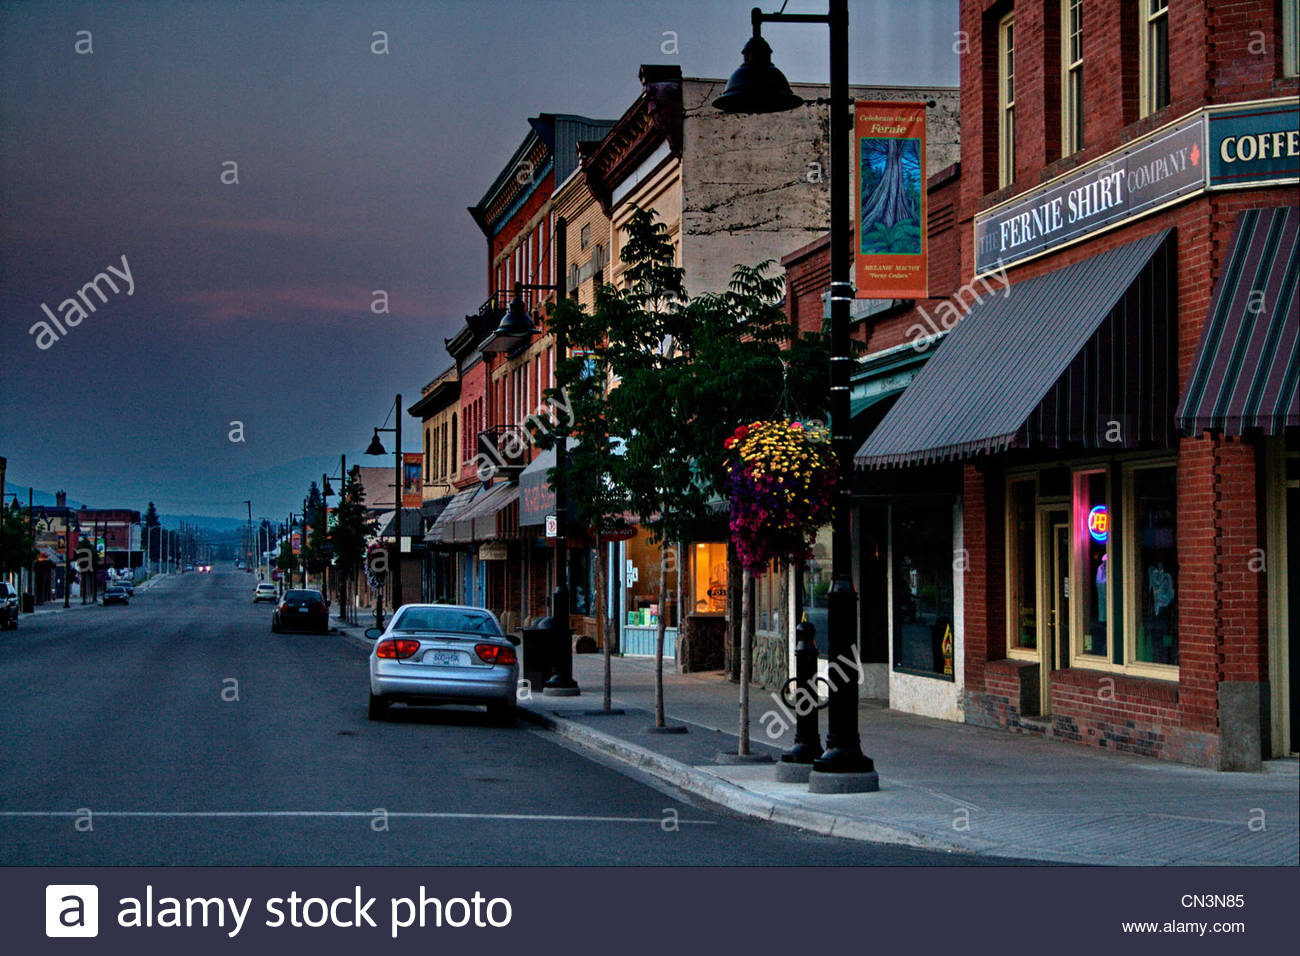 Downtown Street in Fernie, British Columbia - Stock Image